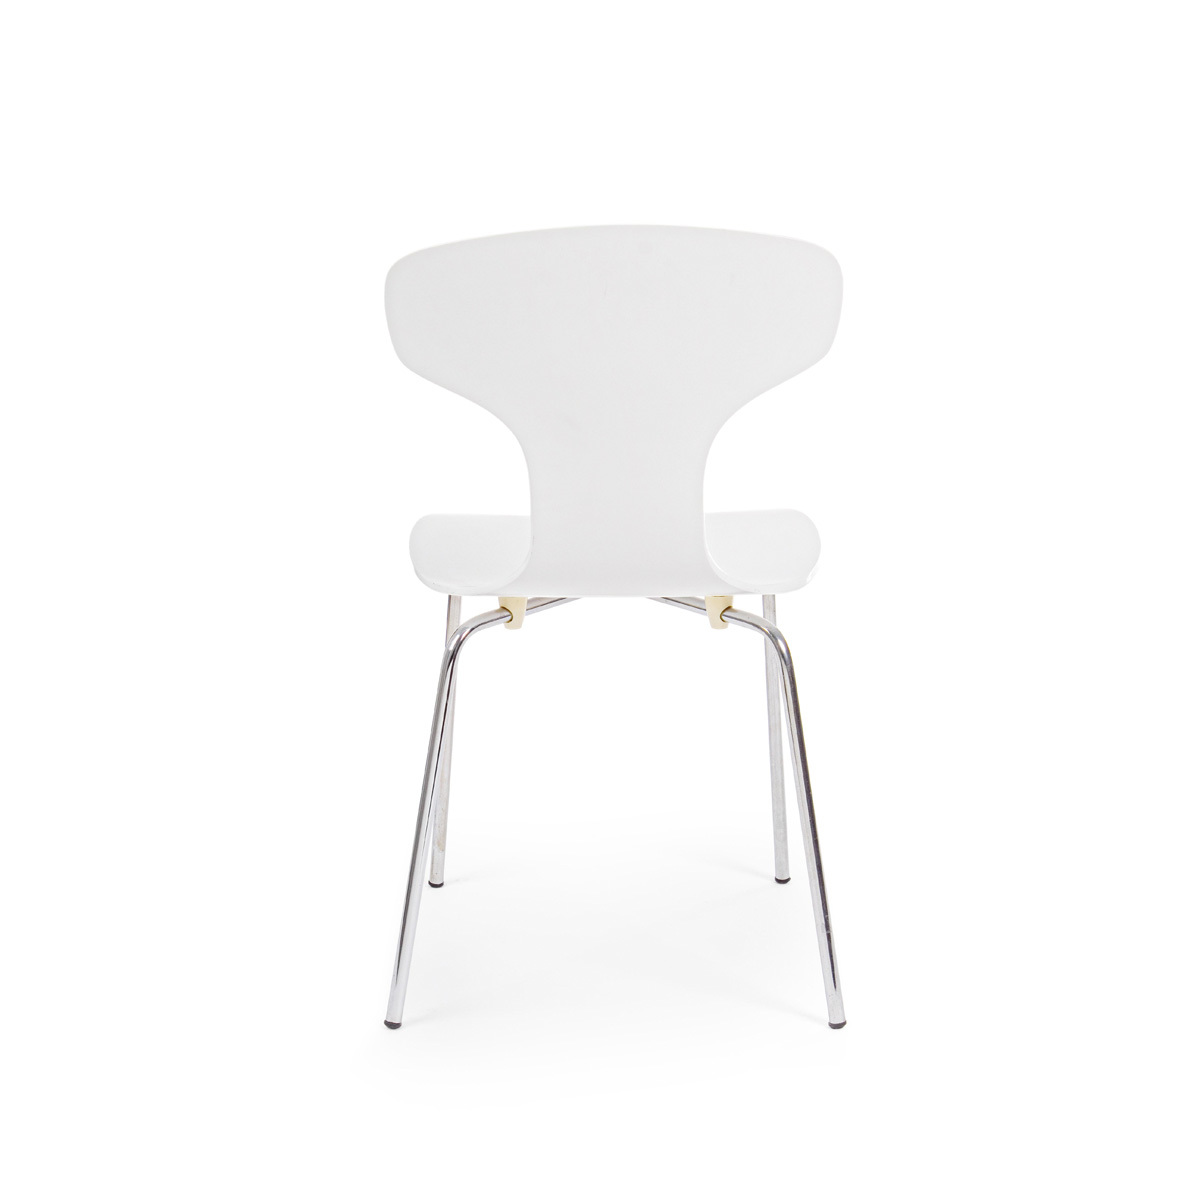 Photos 3: Bizzotto Chair in metal and wood - white 0731622